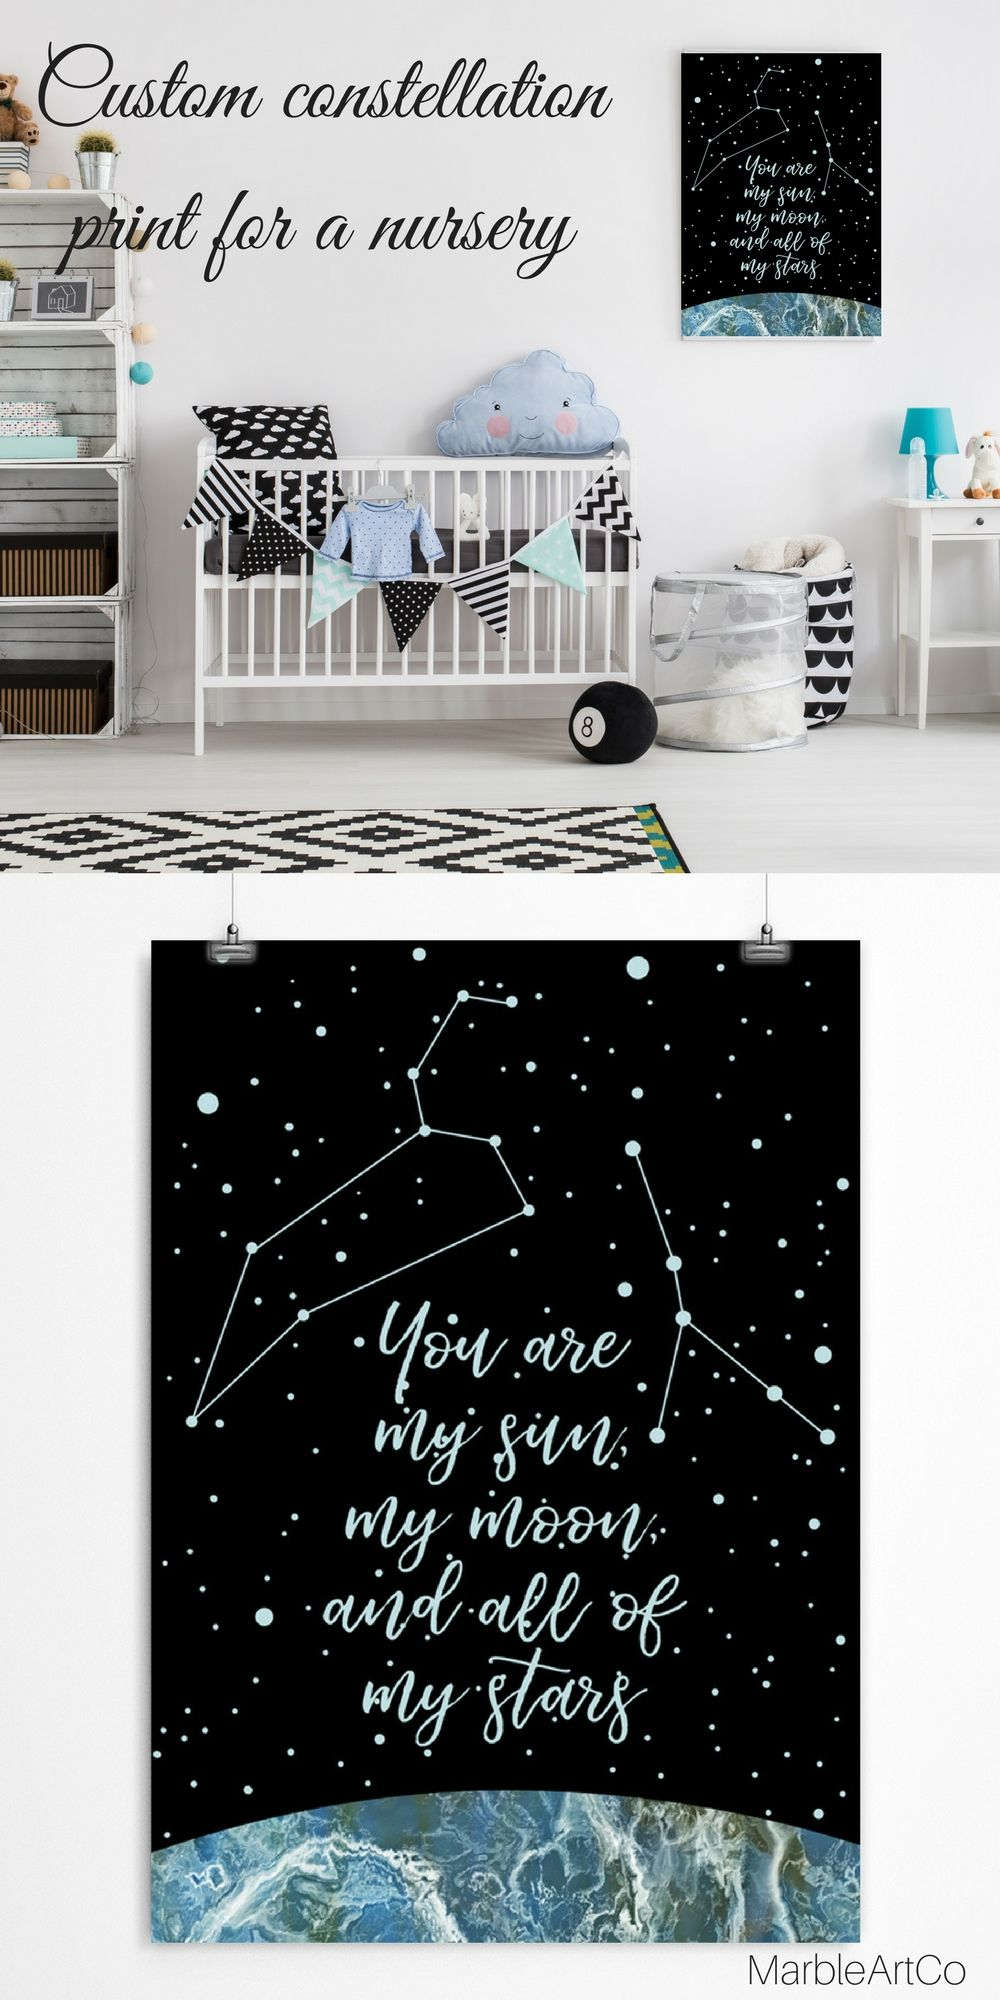 Large Framed Art Prints - I will add any constellations to this print that correspond to the signs of your children and your loved one. Excellent decor for a nursery and anniversary gift.  Check out on MarbleArtCo |  Prints  Giclée  Cool Zodiac Signs  Space Artwork  Large Space Pictures  Night Sky Wall Art Custom Constellation  Constellation Poster  Personalized Gift  outer space for kids  zodiac signs Large Framed Art Prints